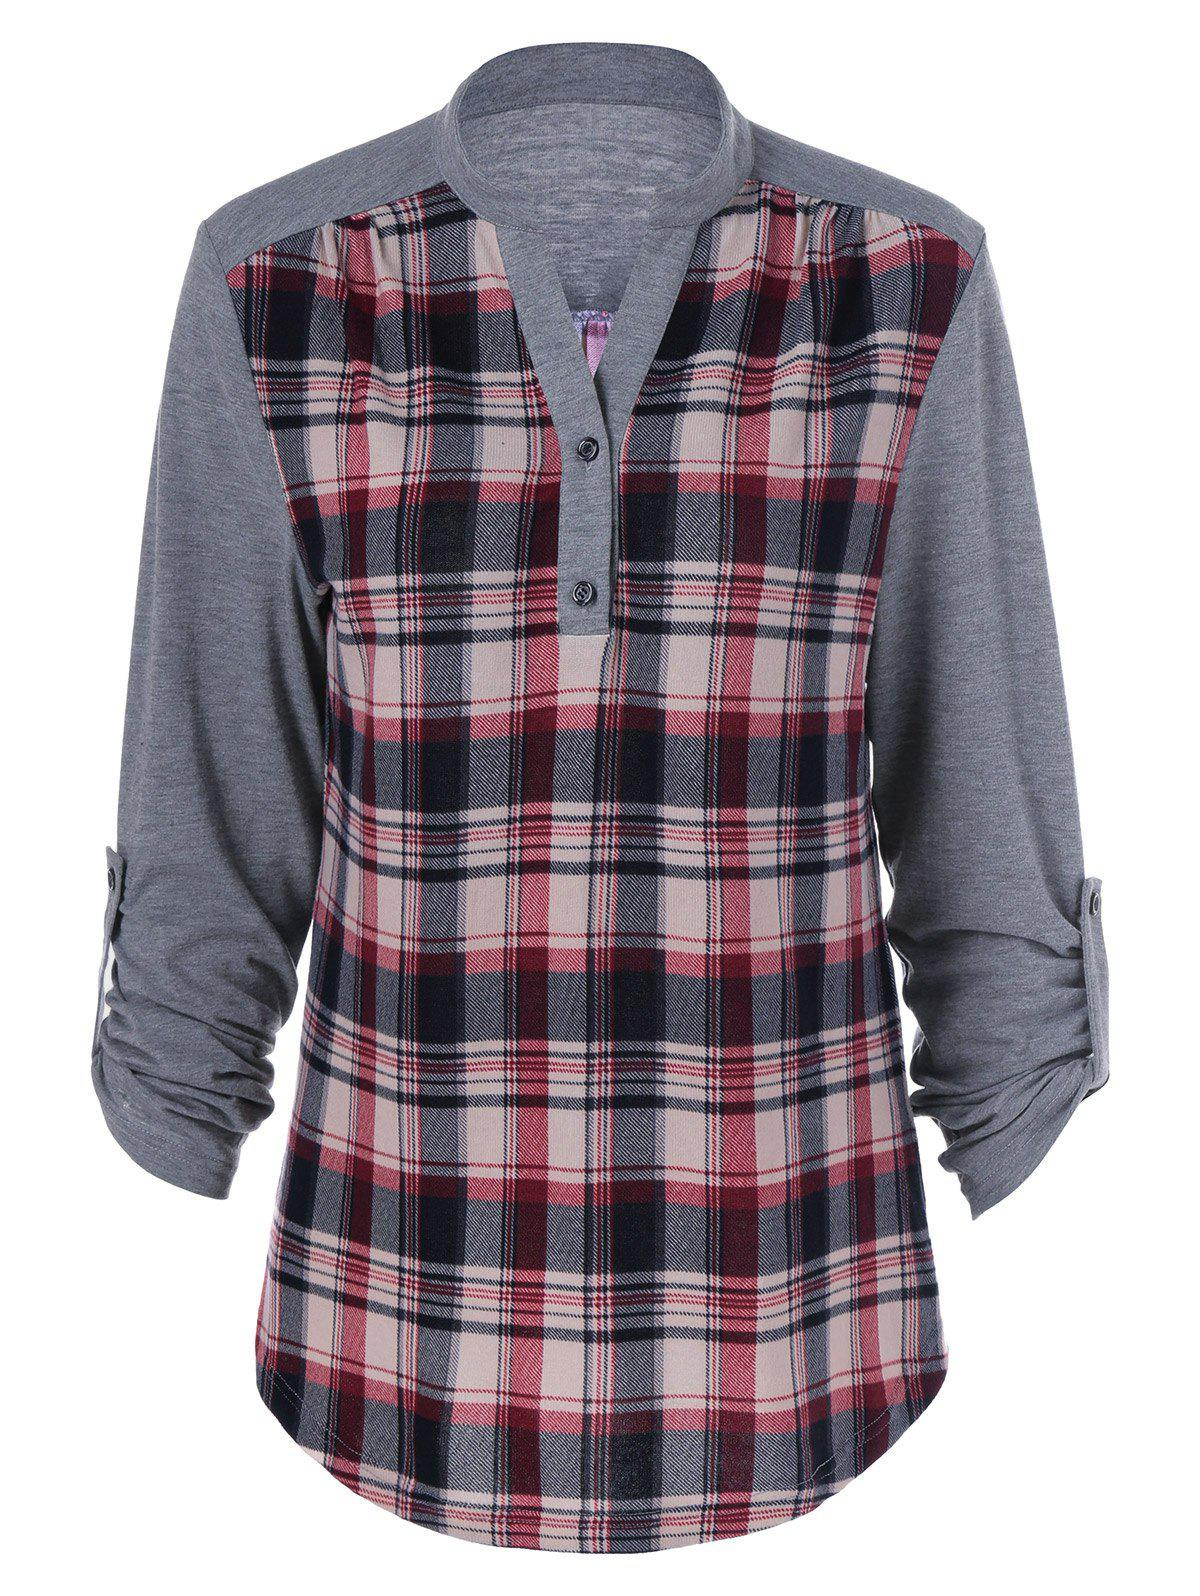 Plaid Patchwork Adjustable Sleeve T-ShirtWOMEN<br><br>Size: XL; Color: CHECKED; Material: Polyester; Sleeve Length: Full; Collar: Stand-Up Collar; Style: Casual; Pattern Type: Plaid; Season: Fall,Spring; Weight: 0.3800kg; Package Contents: 1 x T-Shirt;